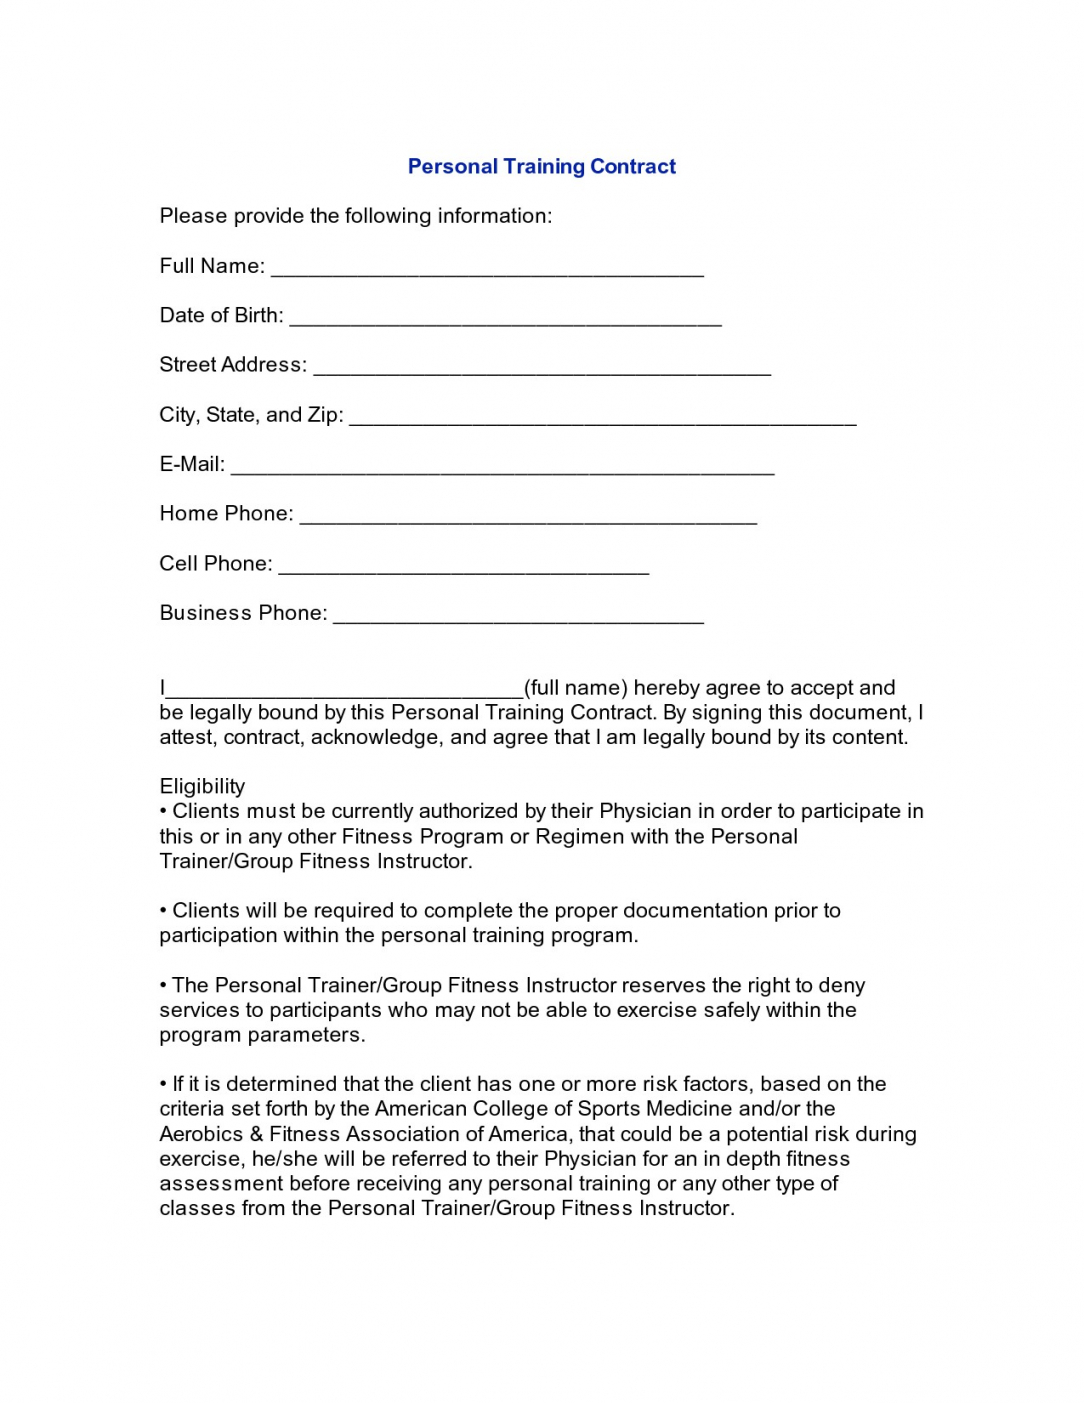 this is the personal training agreement form 26 contract agreement form fitness instructor contract agreement template